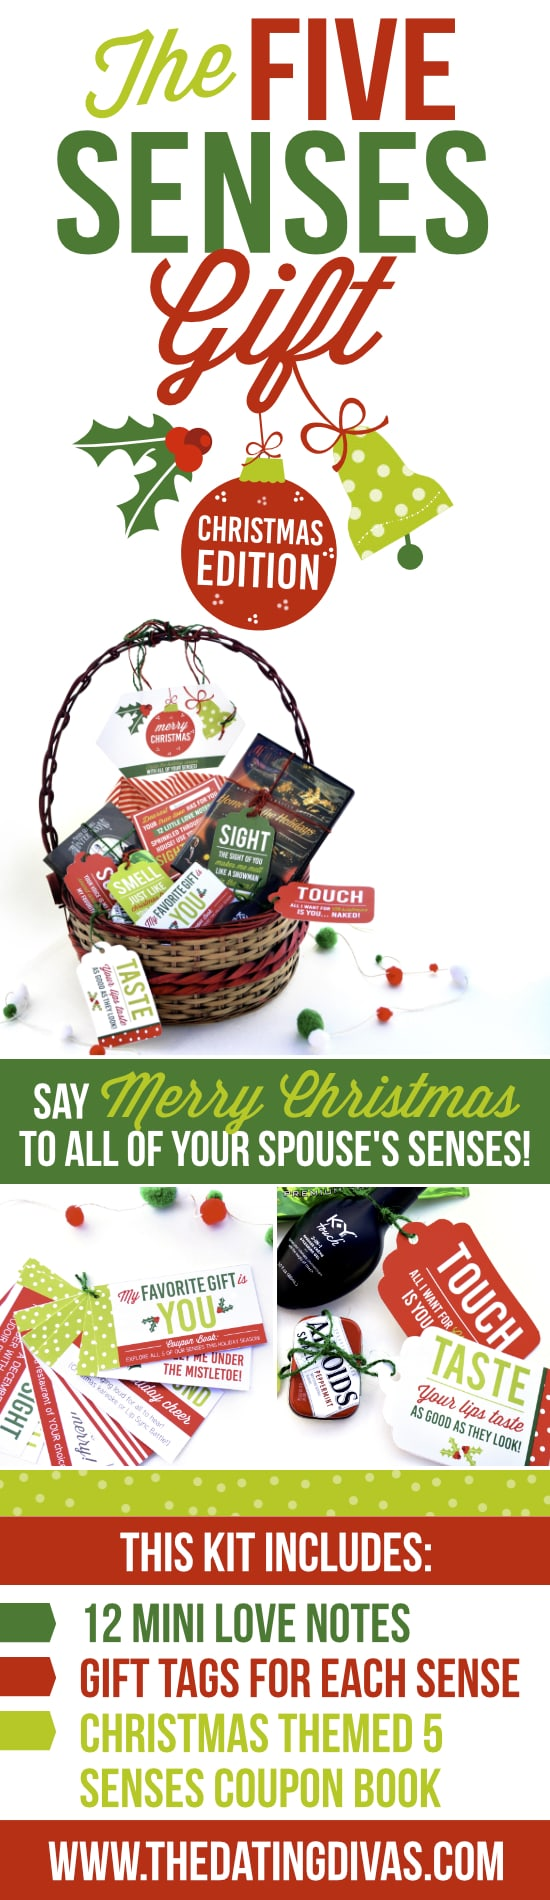 Give a gift to each of your sweetie's 5 senses!